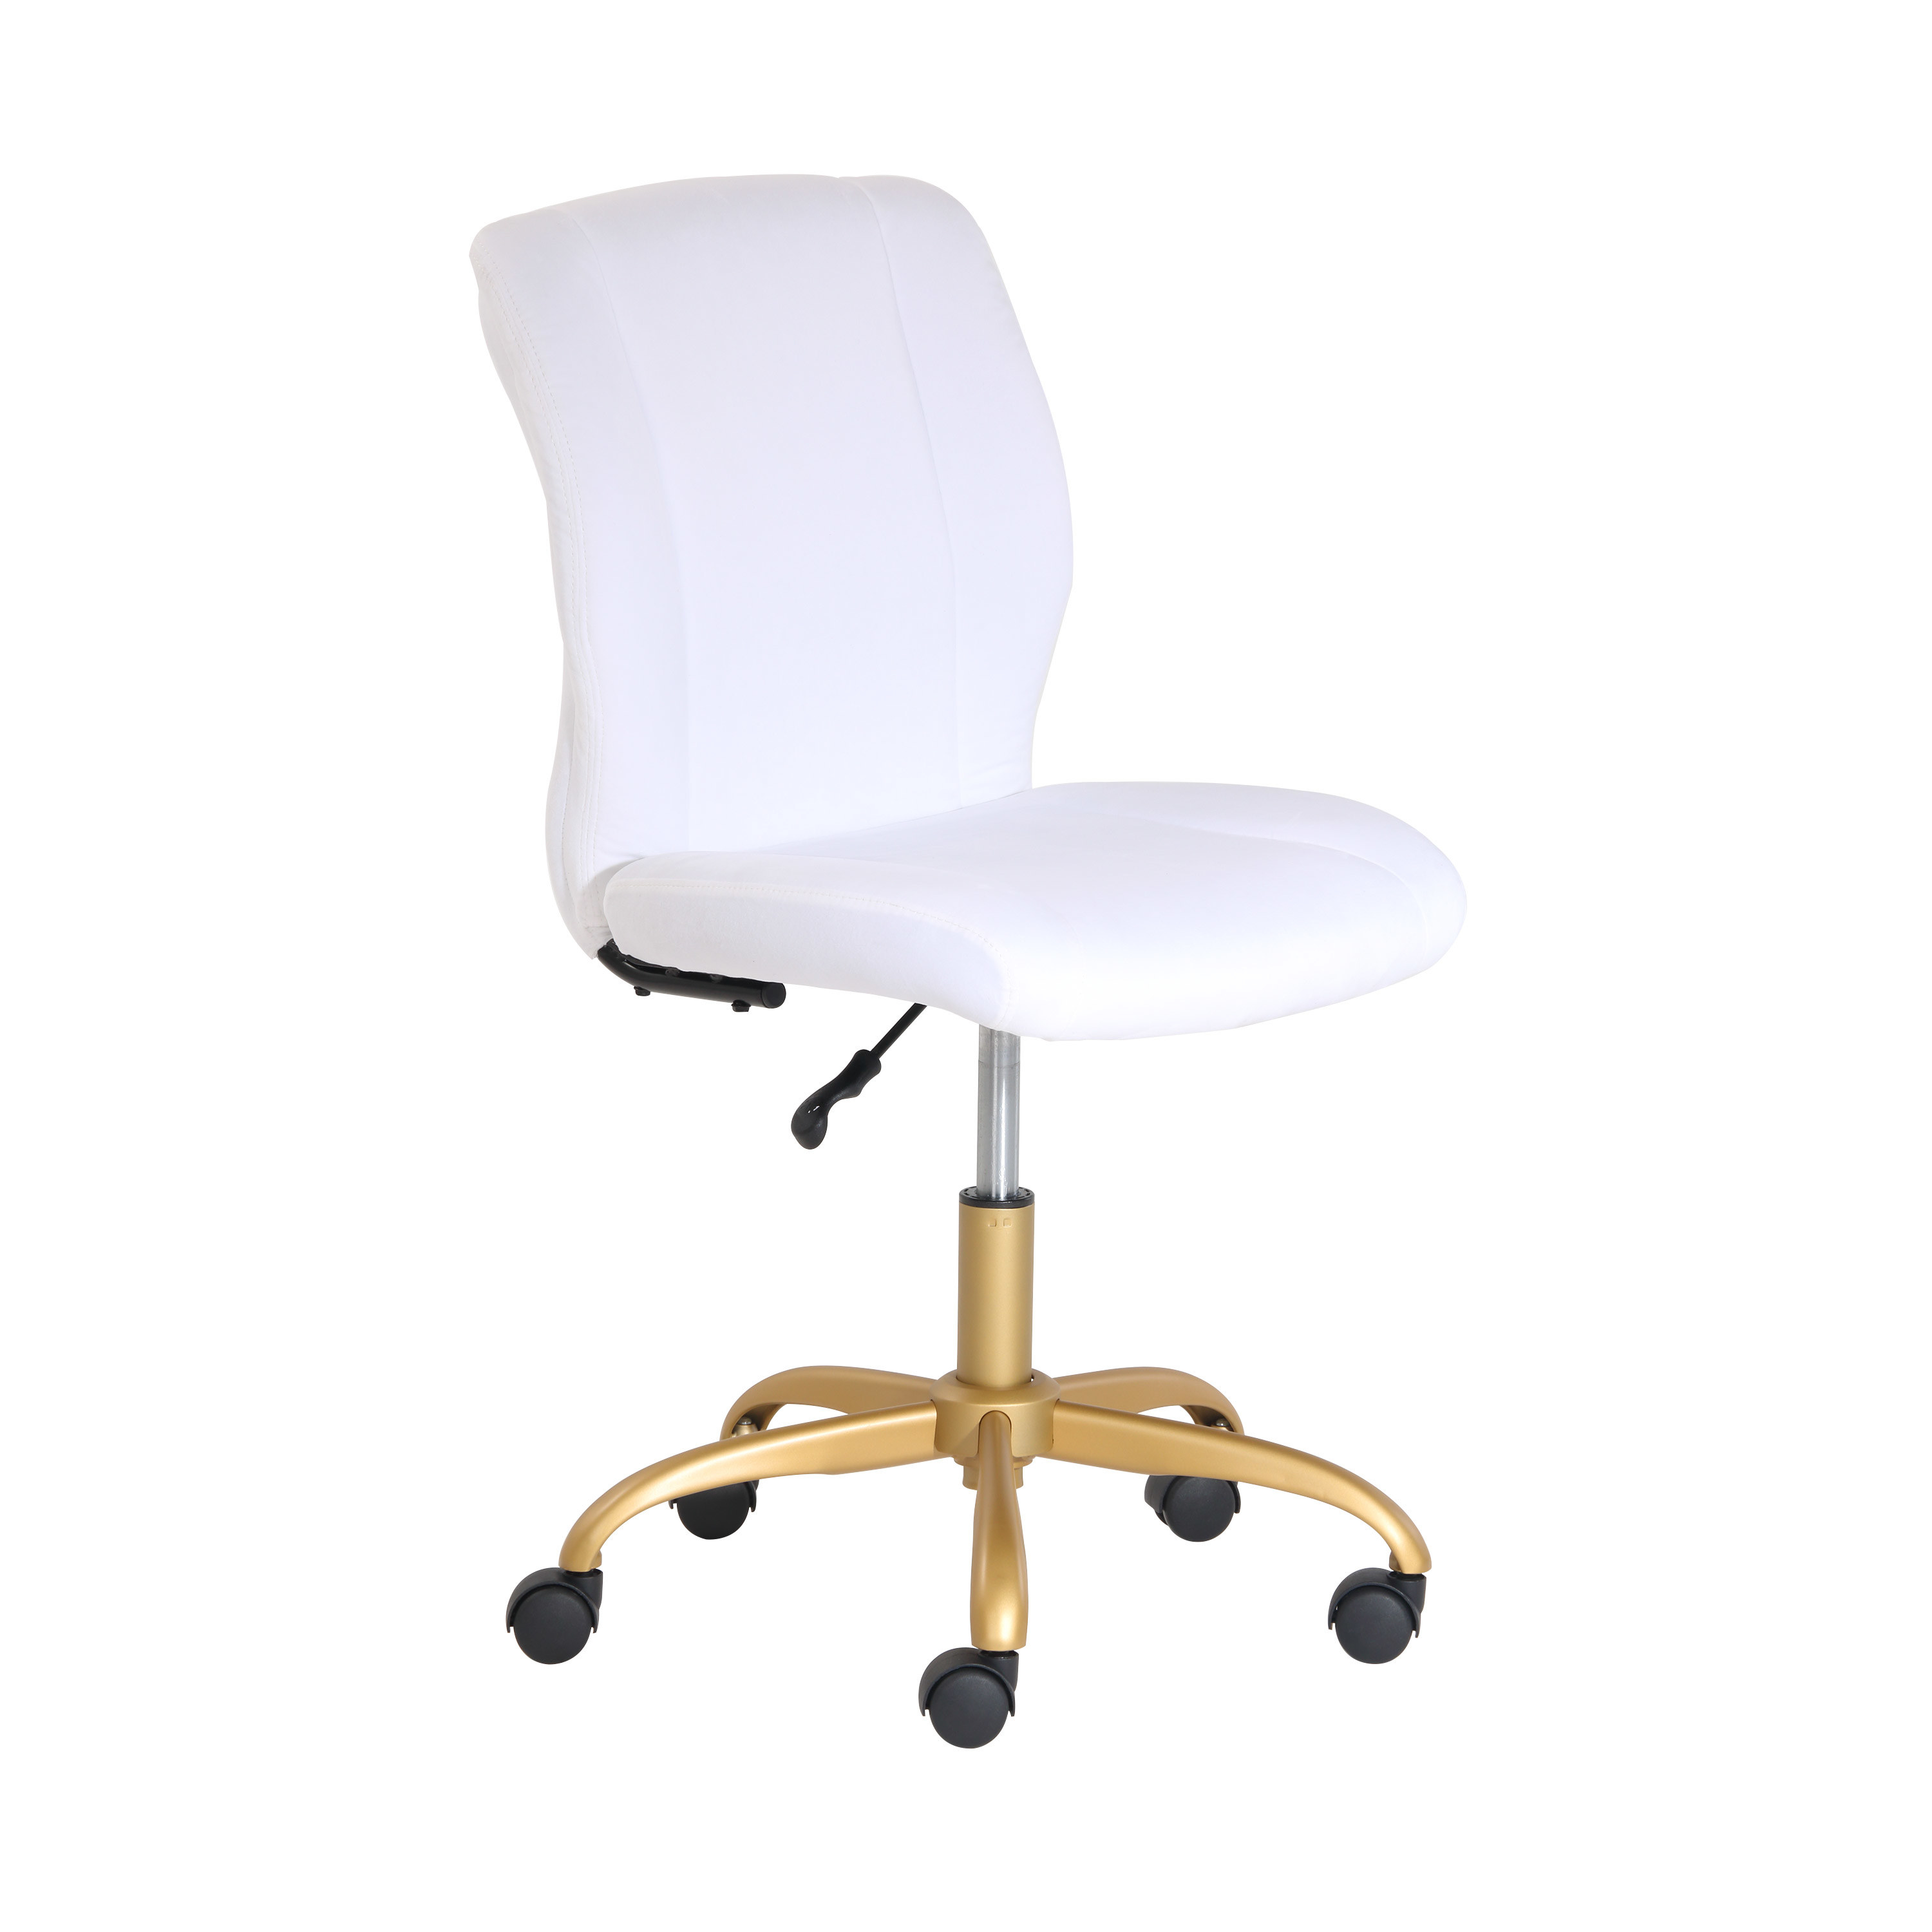 A white office chair with gold legs and five black caster wheels